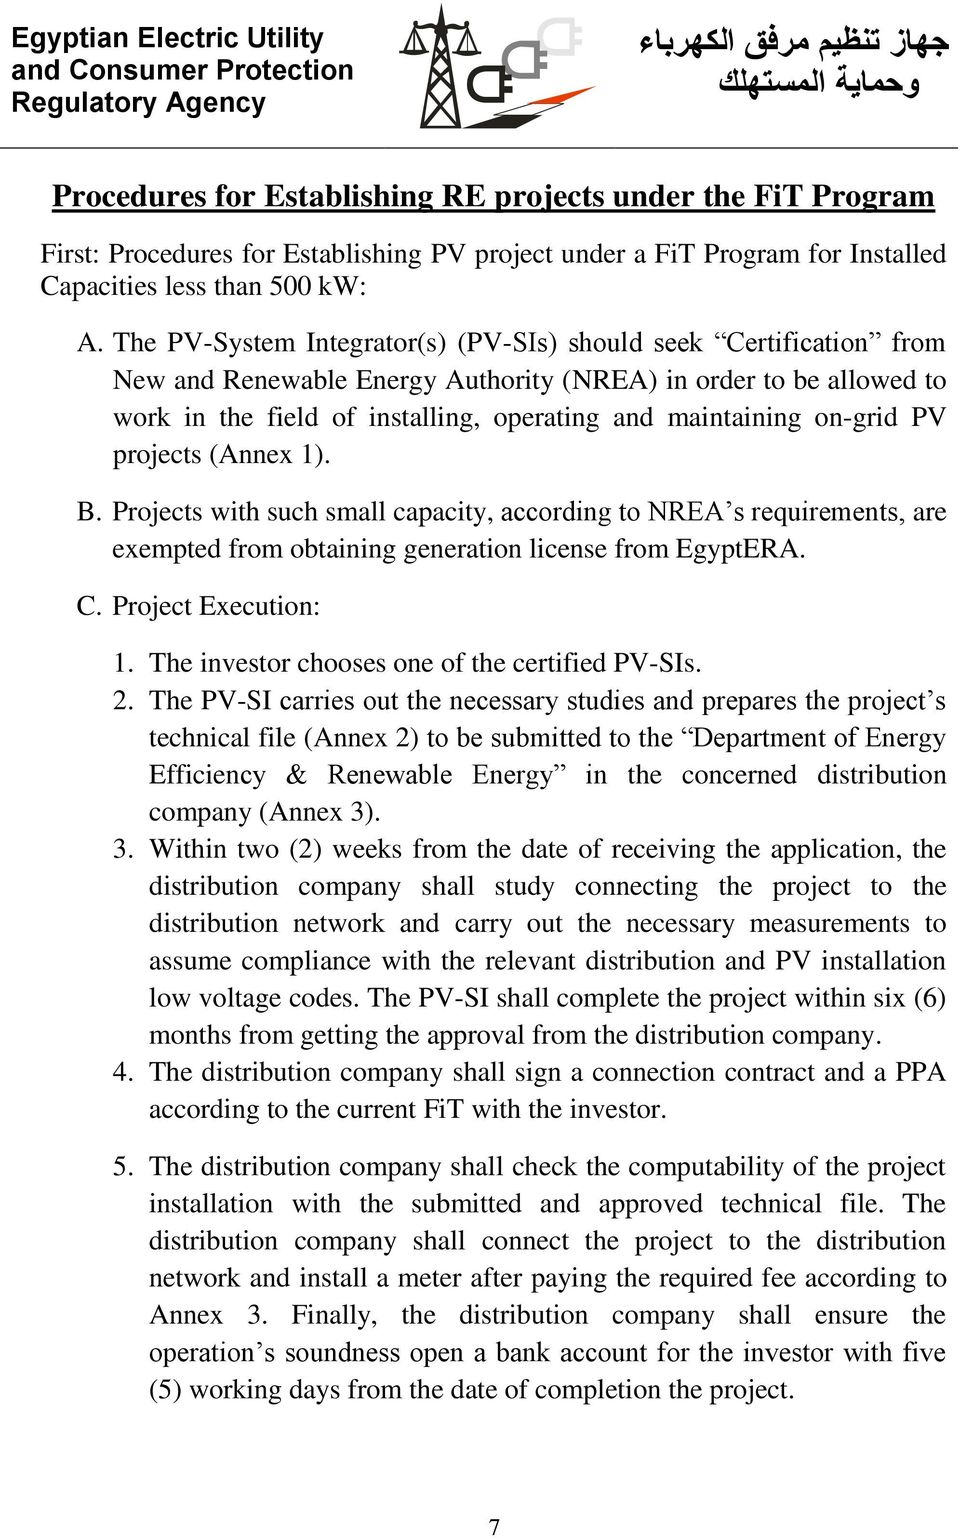 The PV-System Integrator(s) (PV-SIs) should seek Certification from New and Renewable Energy Authority (NREA) in order to be allowed to work in the field of installing, operating and maintaining